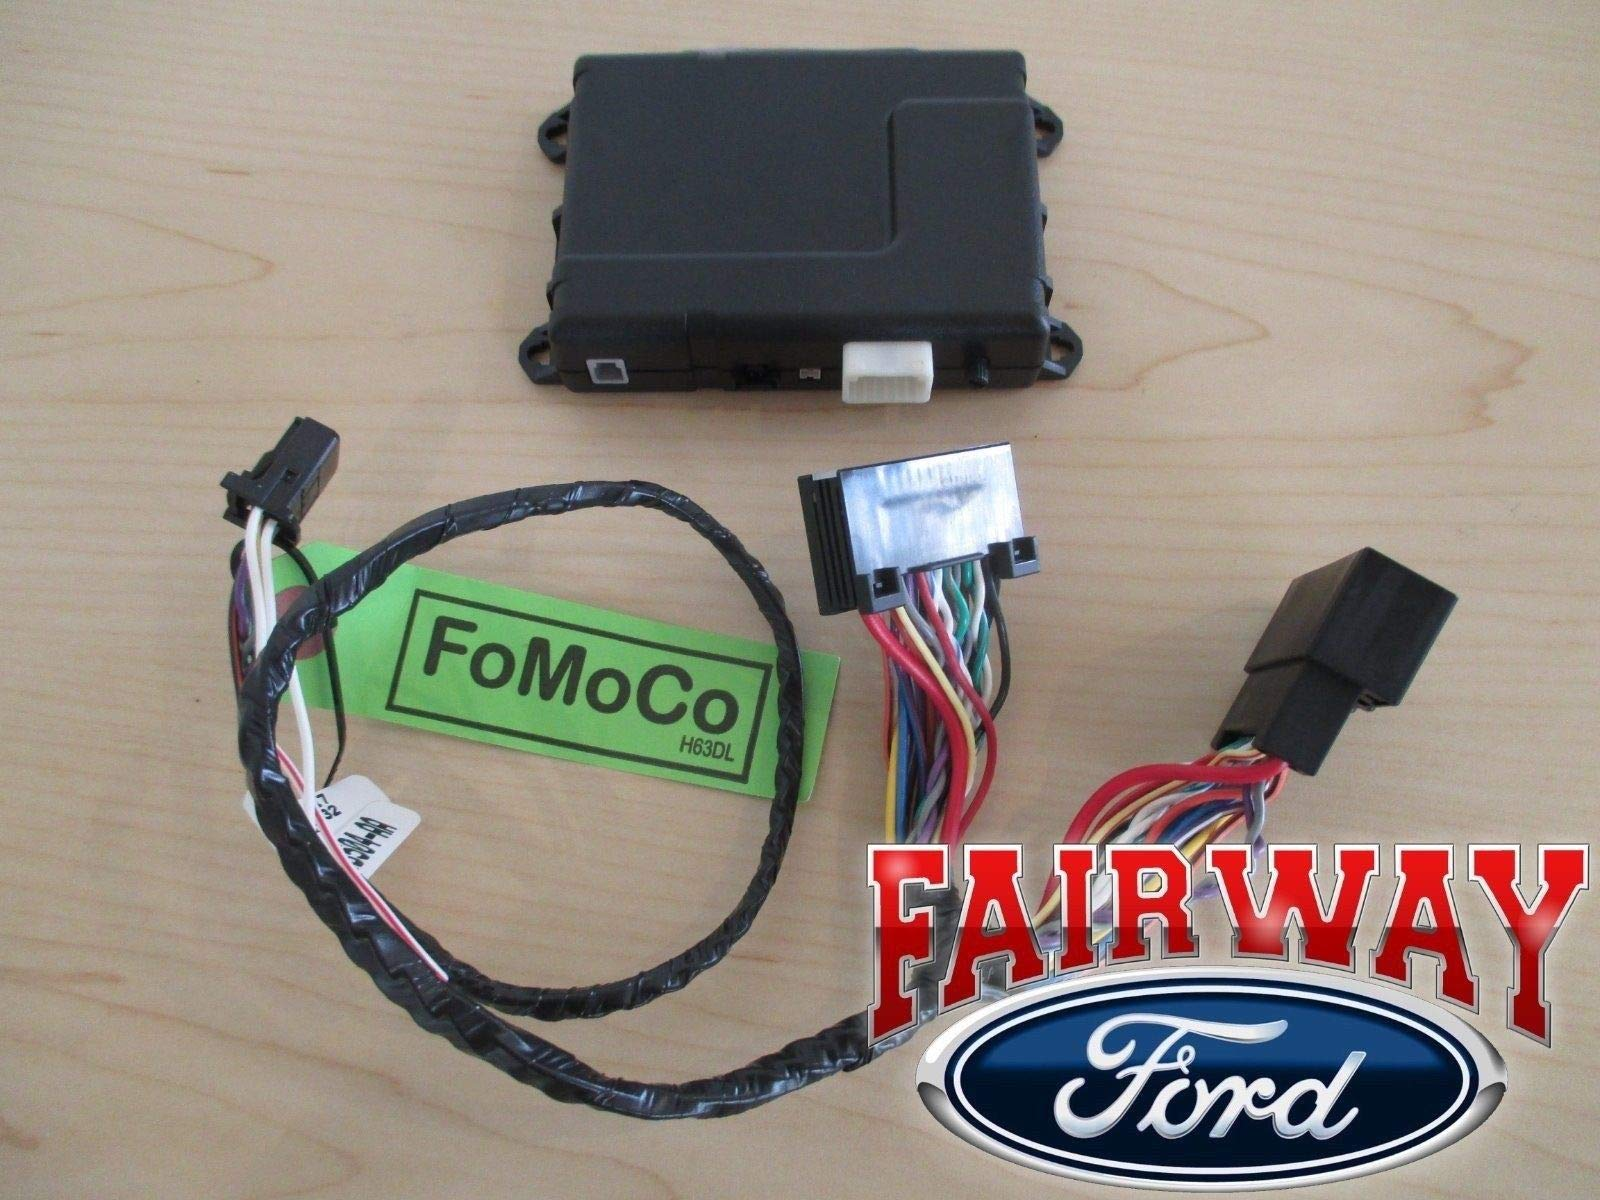 Ford JS7Z-19A361-A Vehicle Security System by Ford